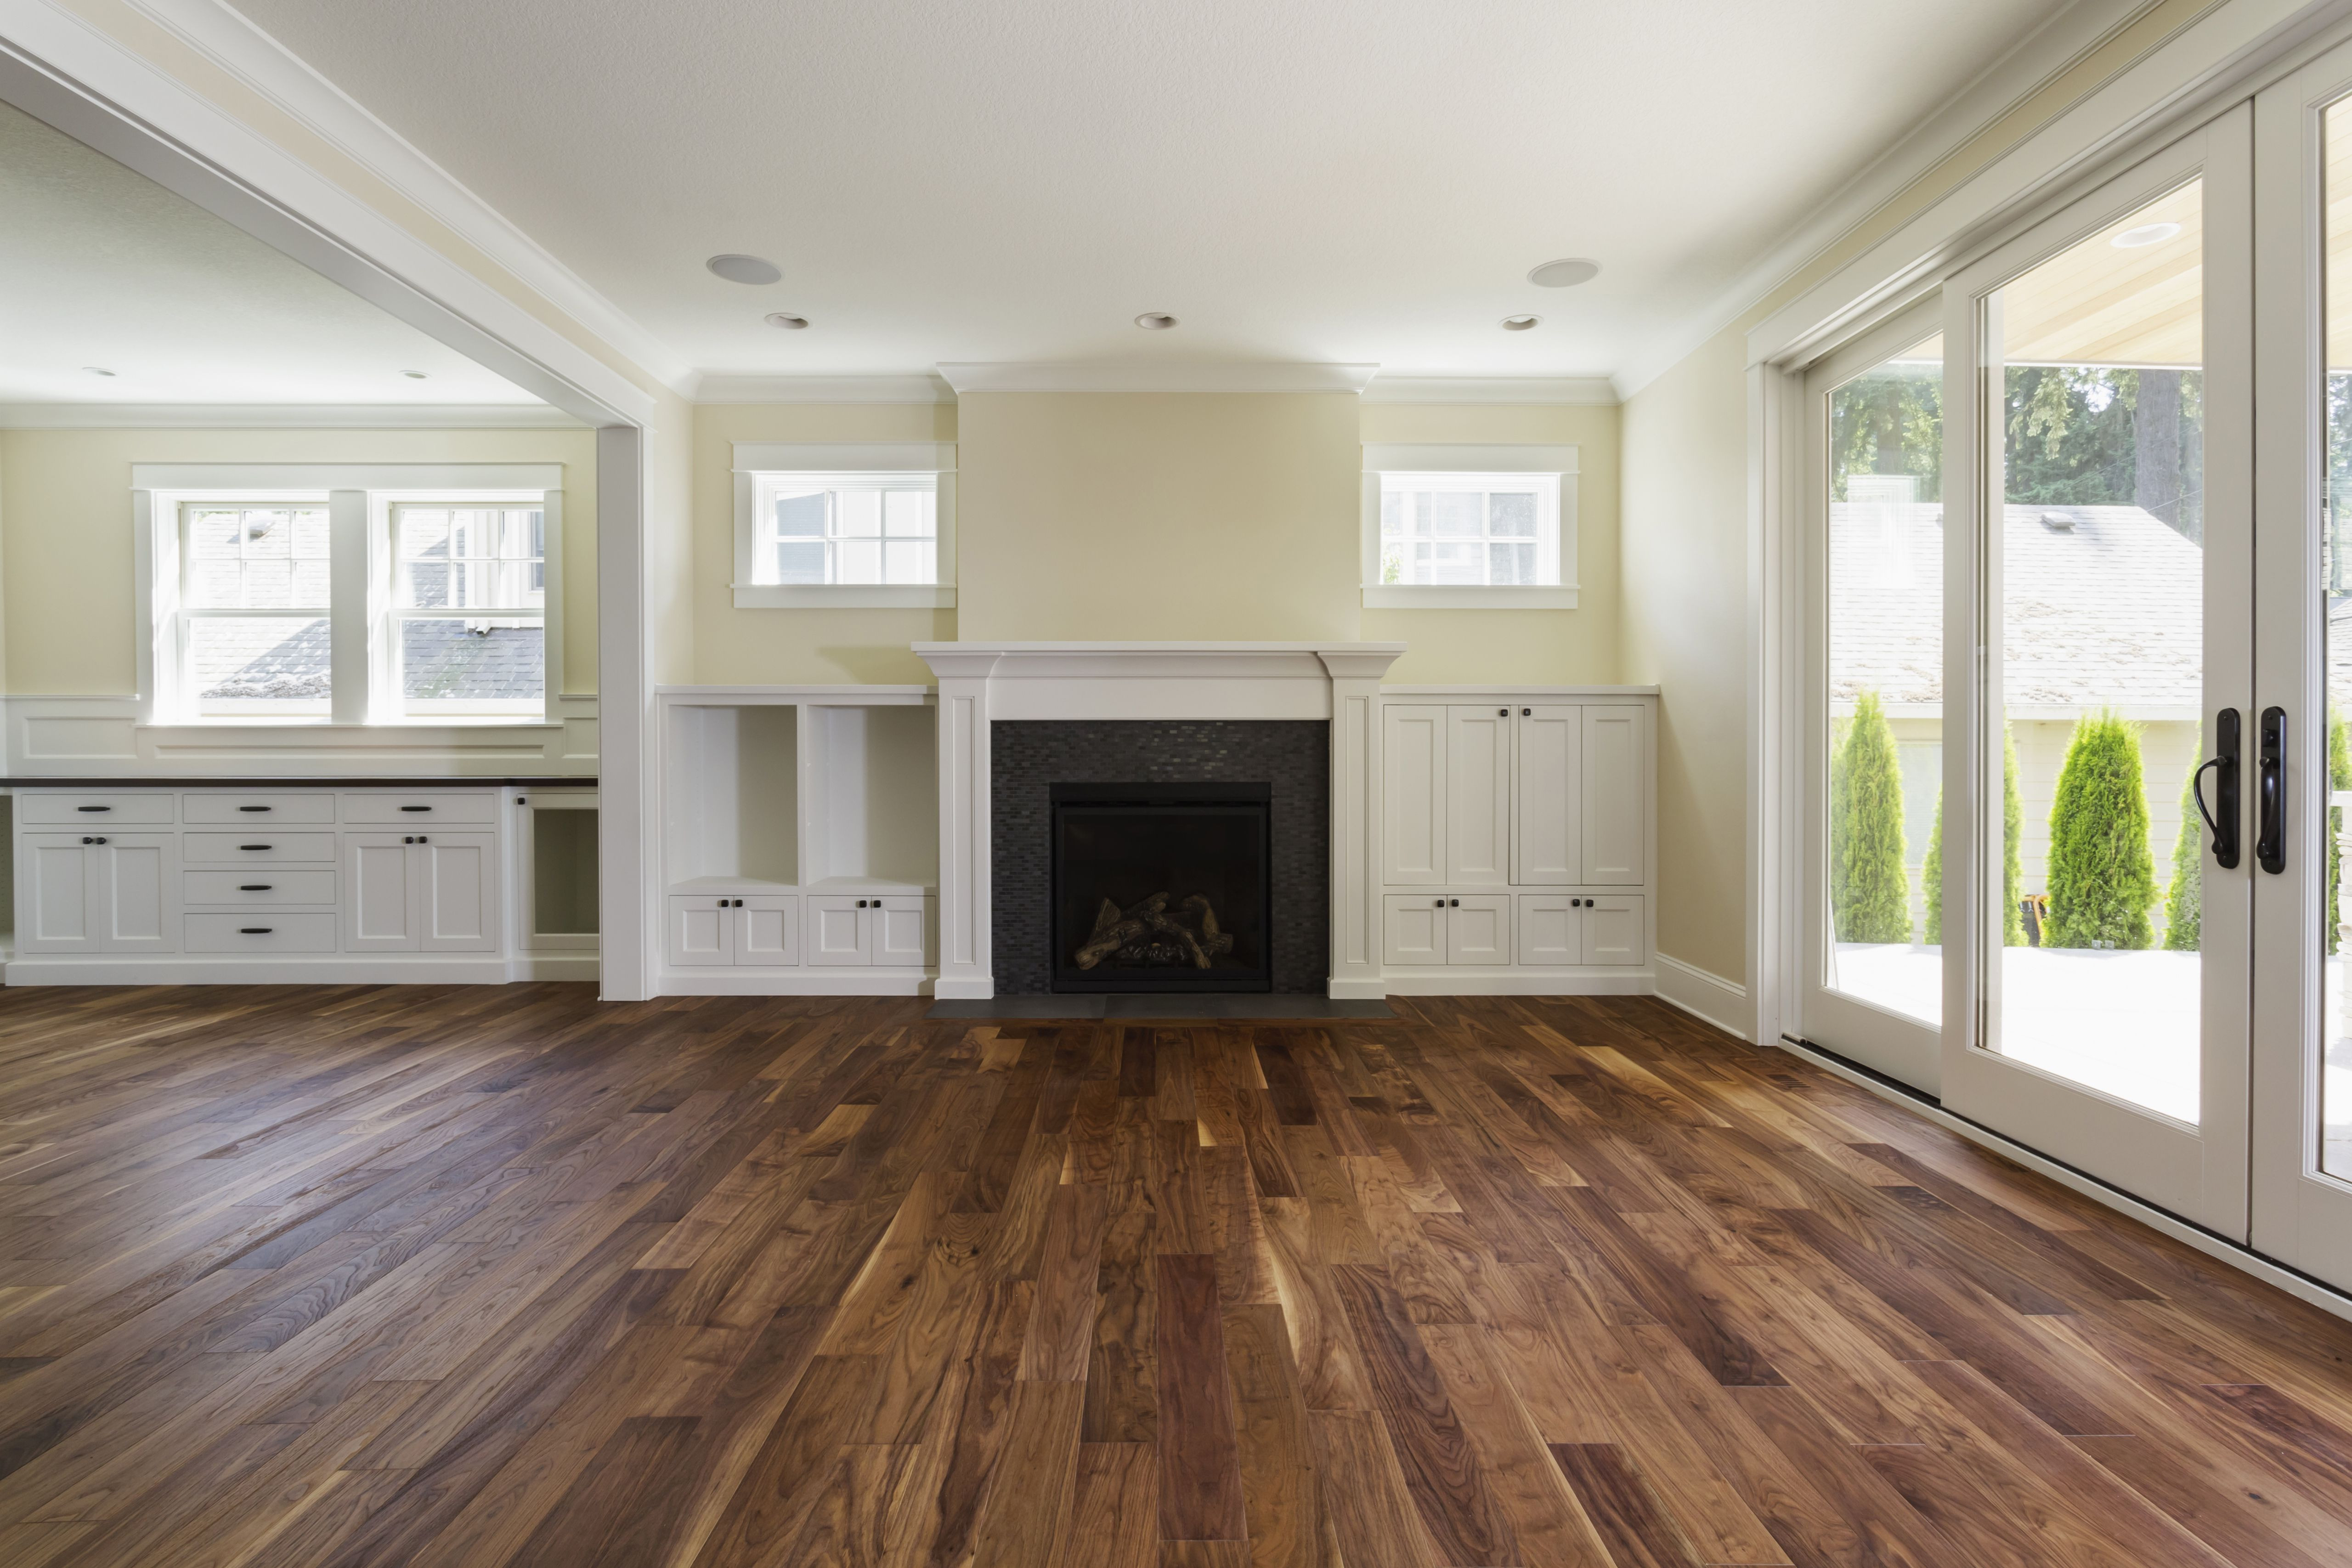 cost estimate to refinish hardwood floors of the pros and cons of prefinished hardwood flooring pertaining to fireplace and built in shelves in living room 482143011 57bef8e33df78cc16e035397